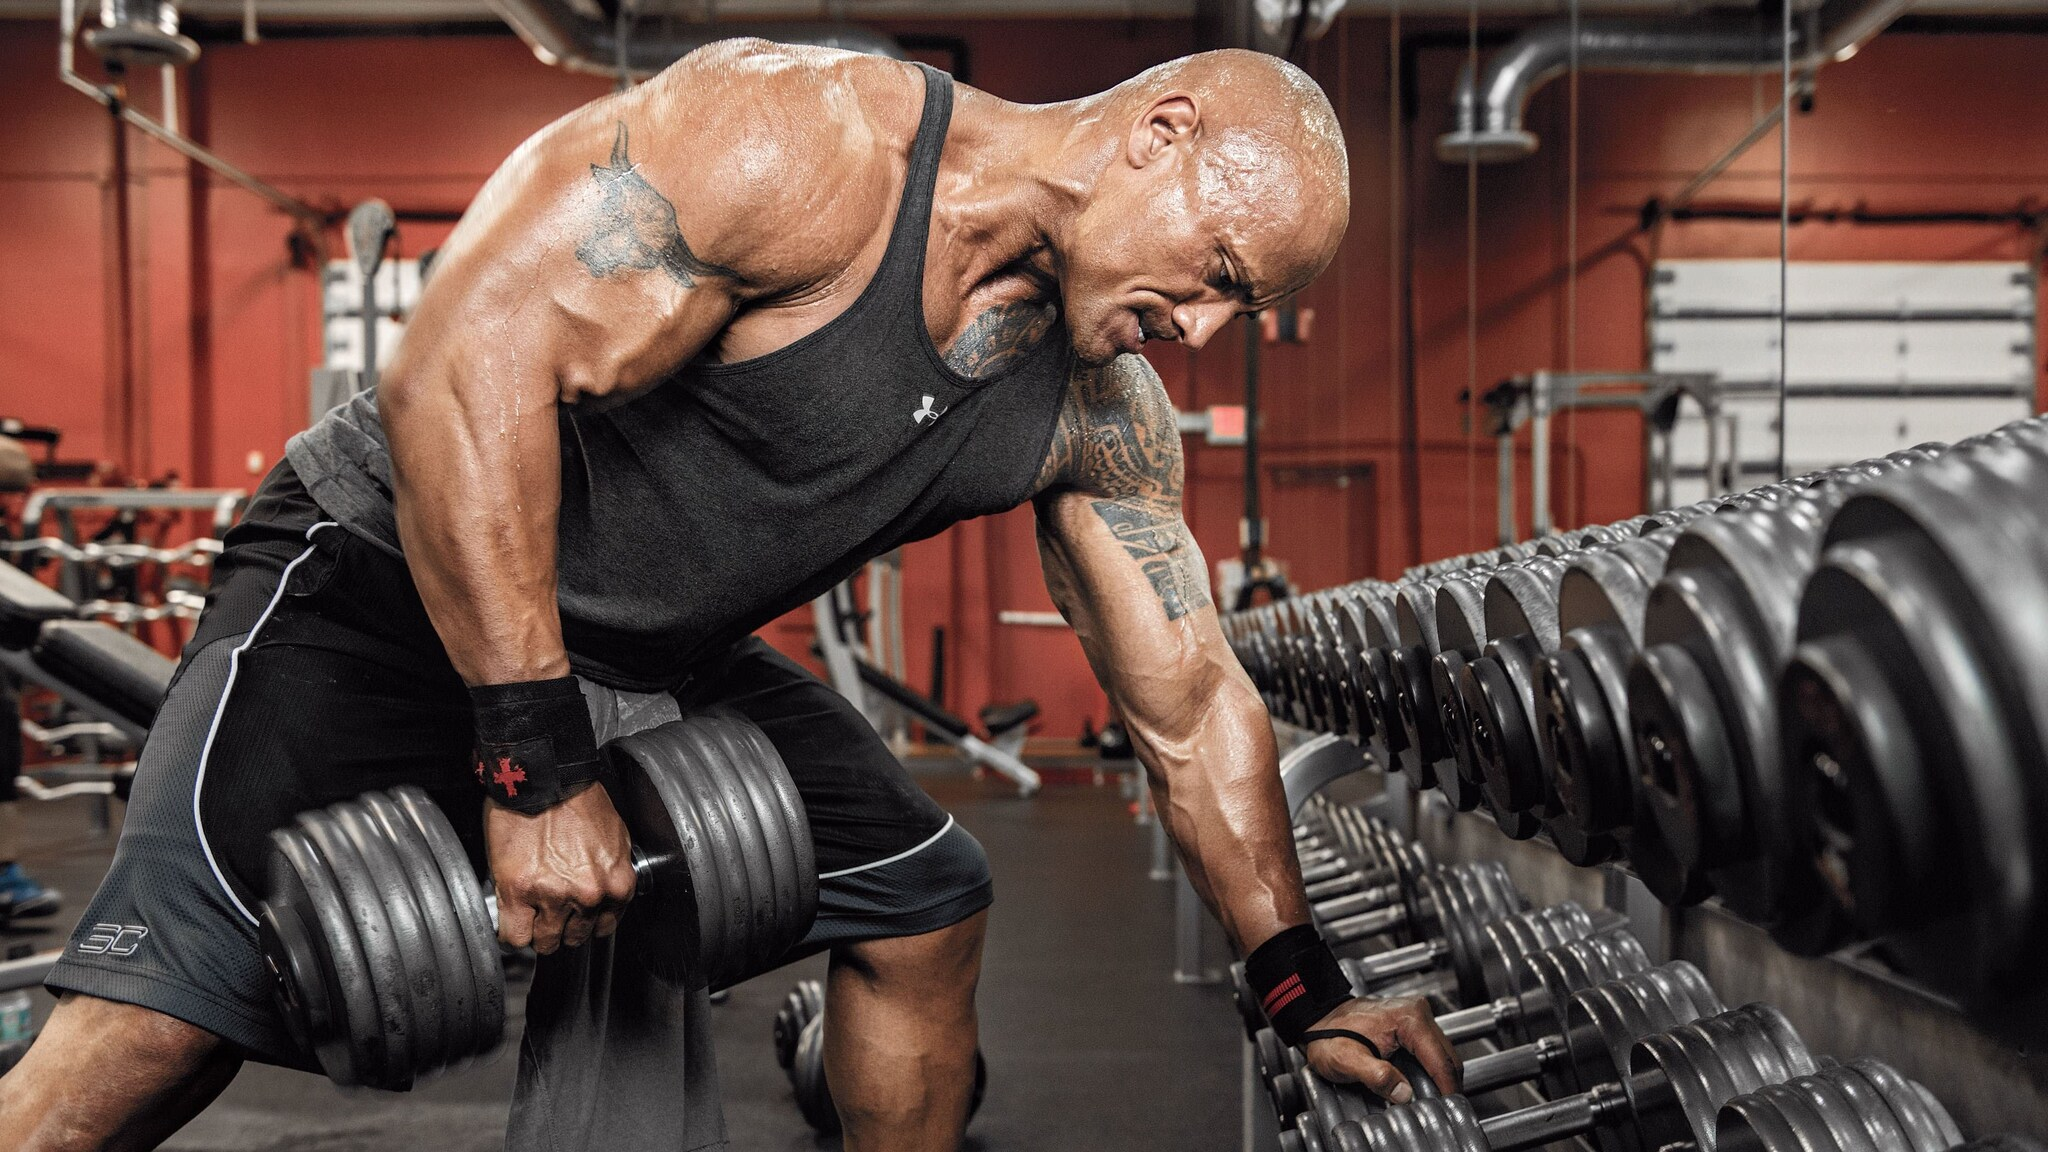 2048x1152 Dwayne Johnson Workout 2048x1152 Resolution Hd 4k Wallpapers Images Backgrounds Photos And Pictures